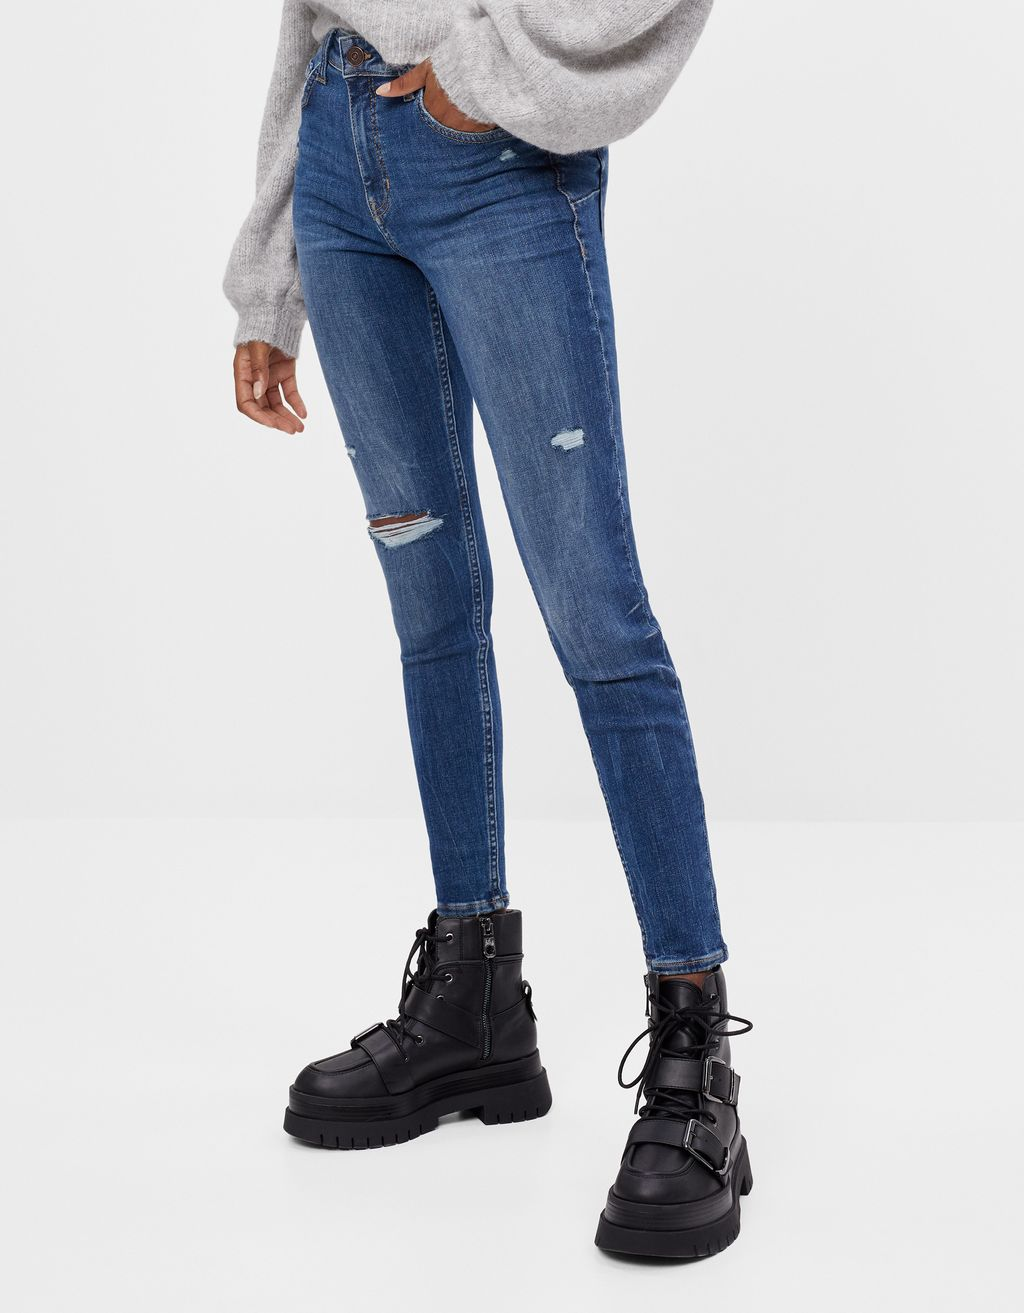 Stretchy push up jeans